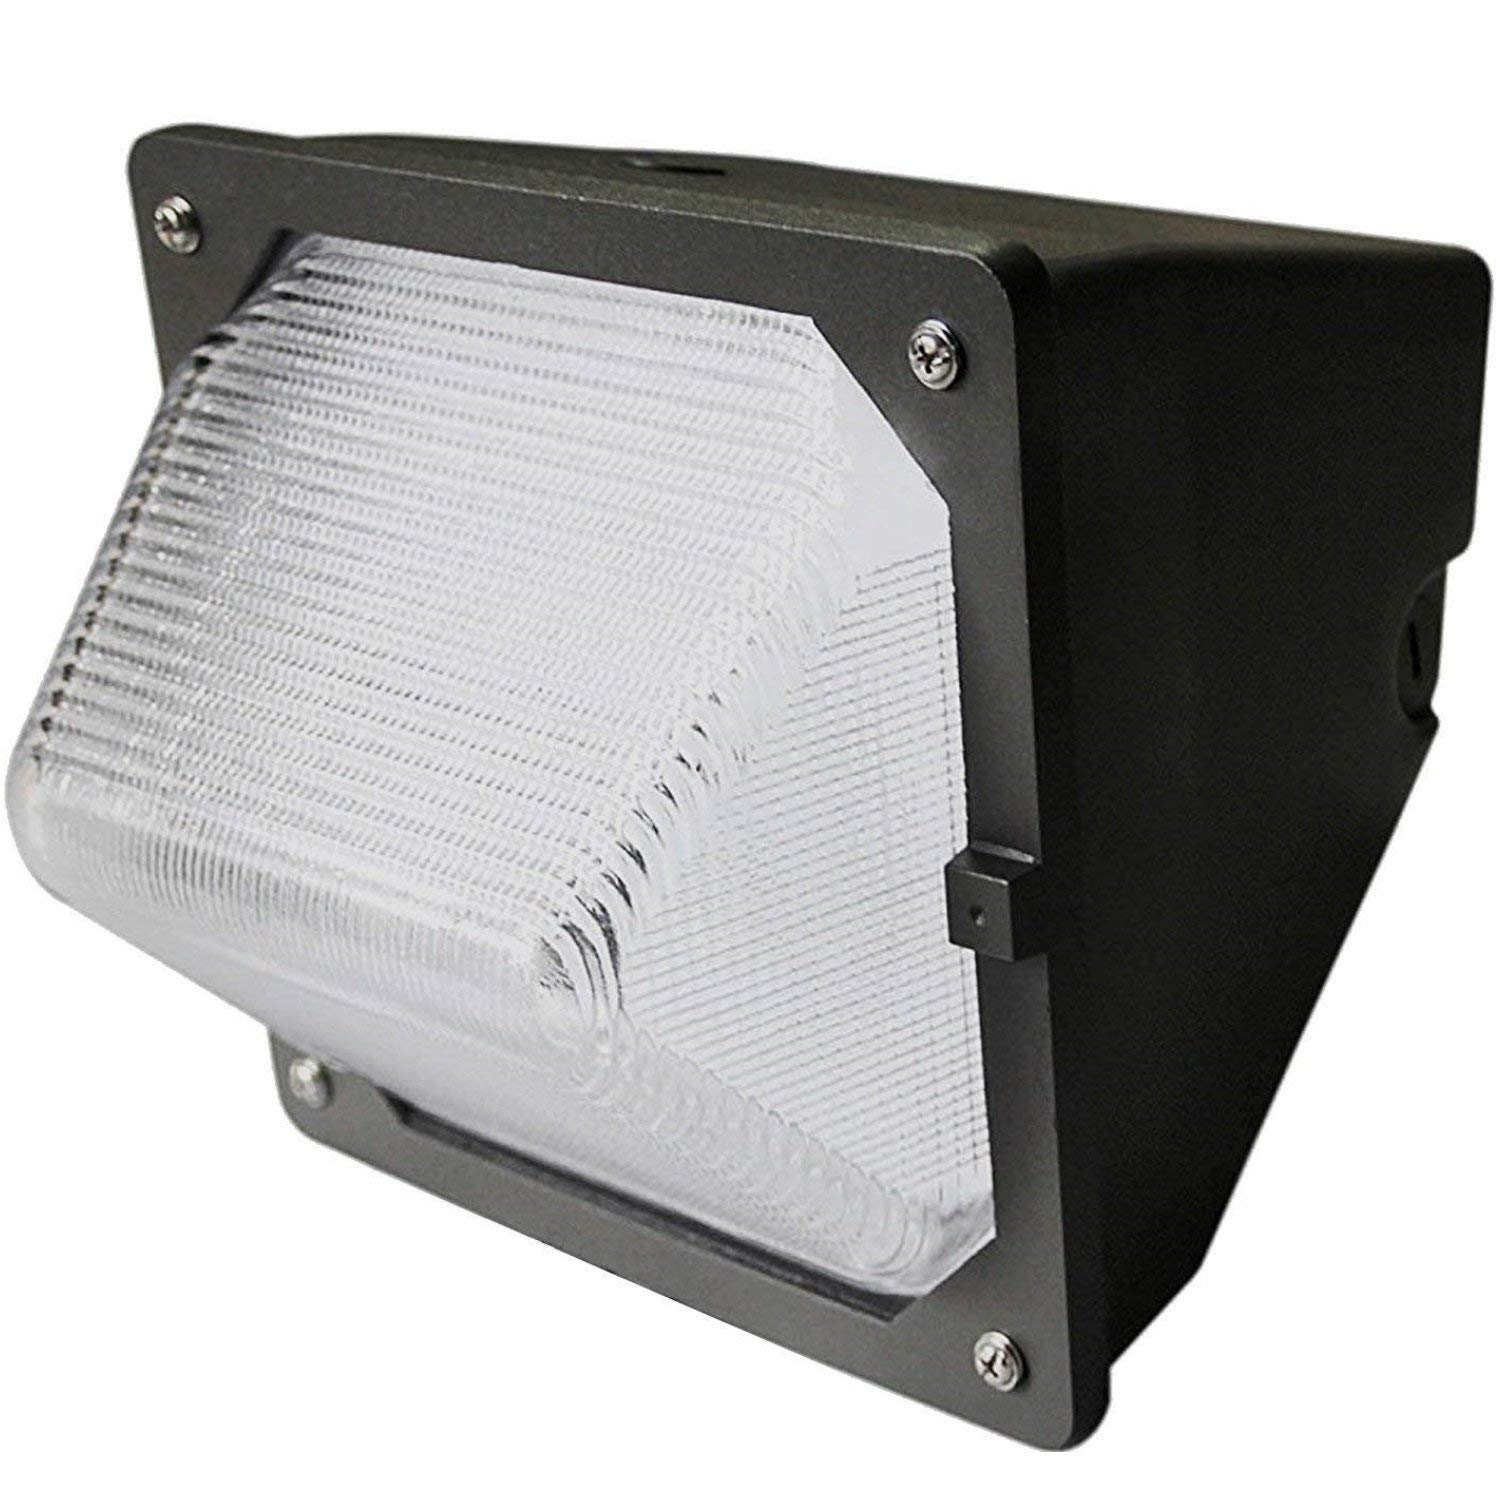 LED Wall-Pack Photo Cell Glass Lens- 30W 5000K Commercial Outdoor Light Fixture ( Out-Door Dusk to Dawn Sensor Security Porch Lighting For Industrial Out-Side Photocell )